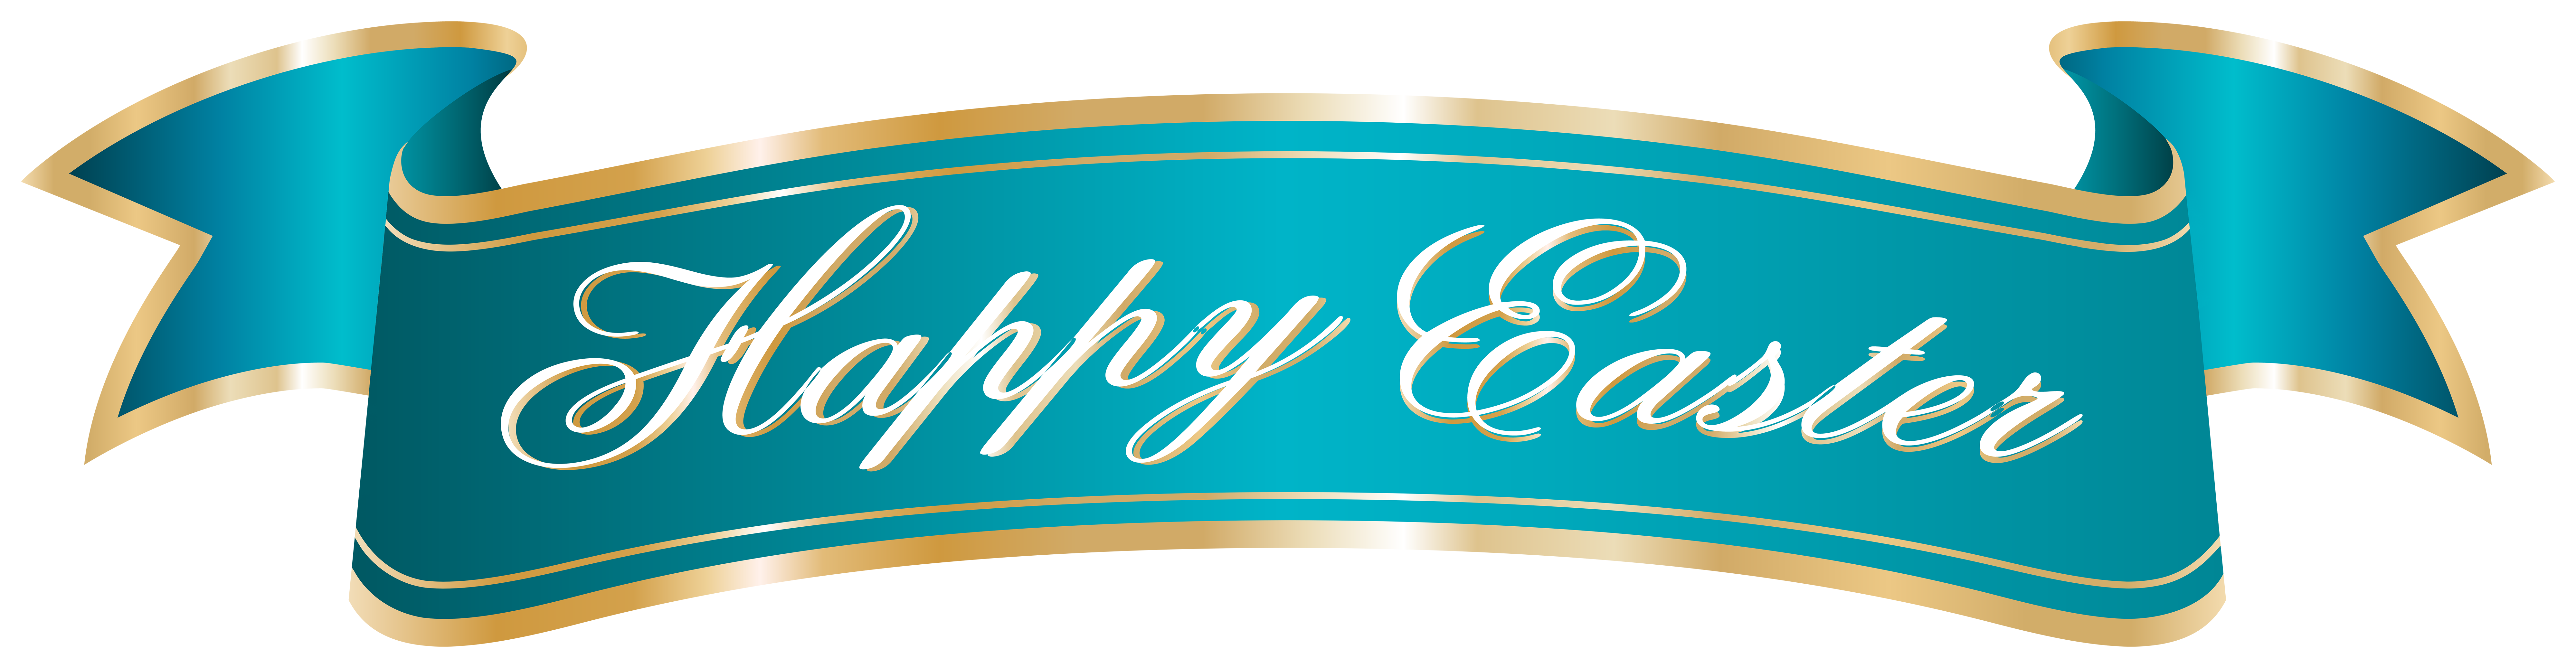 Happy Easter Banner Png Clip Art Image Gallery Yopriceville High Quality Images And Transparent Png Free Happy Easter Banner Easter Banner Easter Symbols